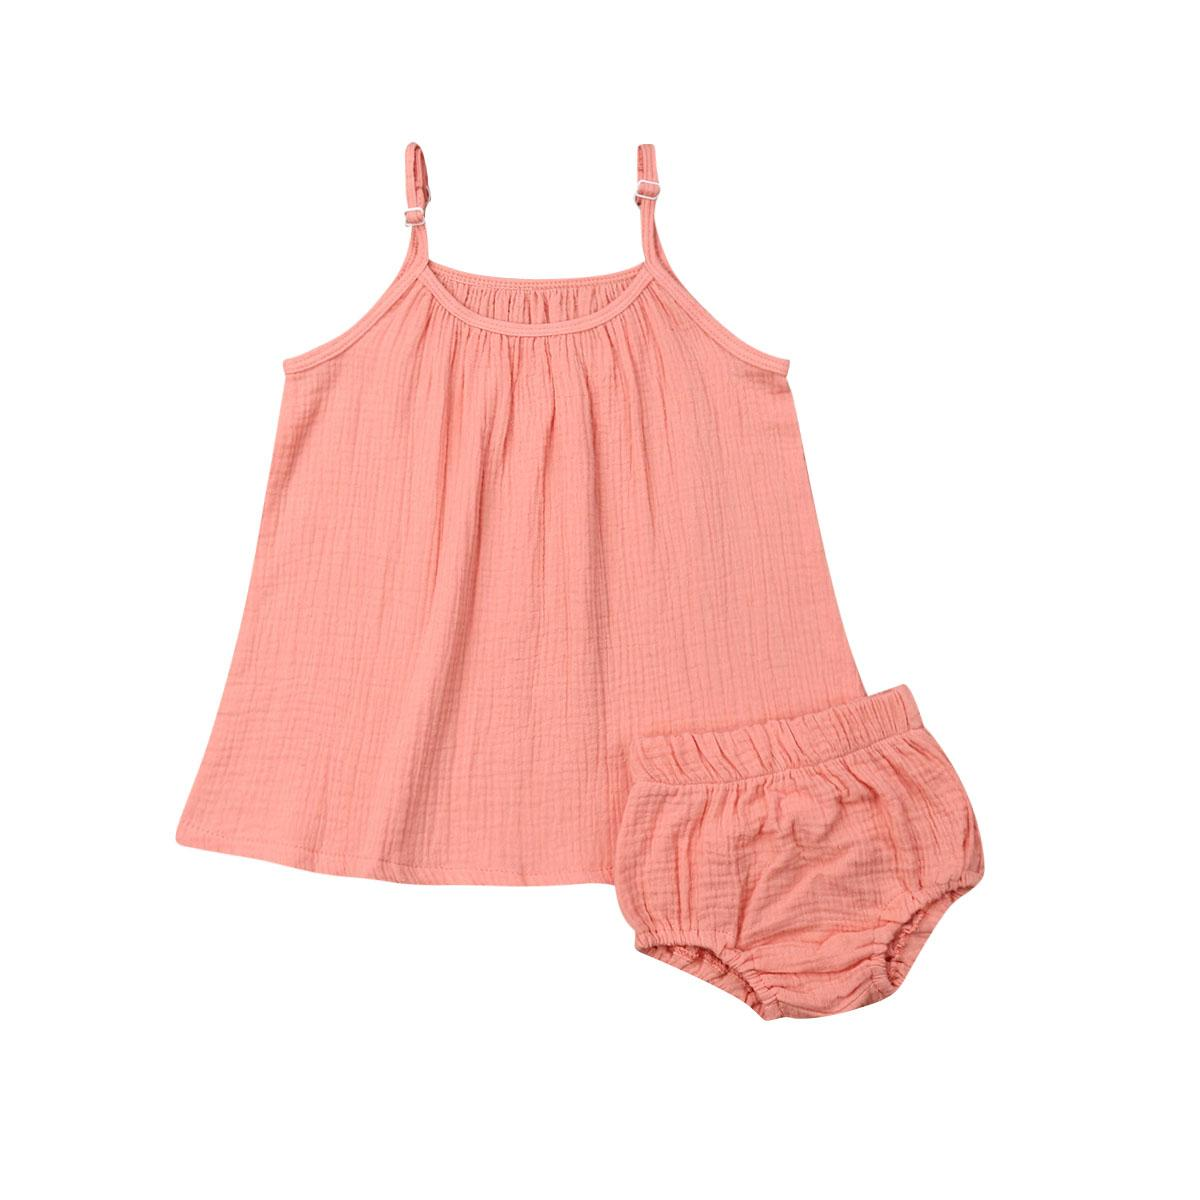 Toddler Kids Baby Girls Solid color Sleeveless Long Tops + Mini Shorts 2pcs Outfits Summer Casual Kid Clothes